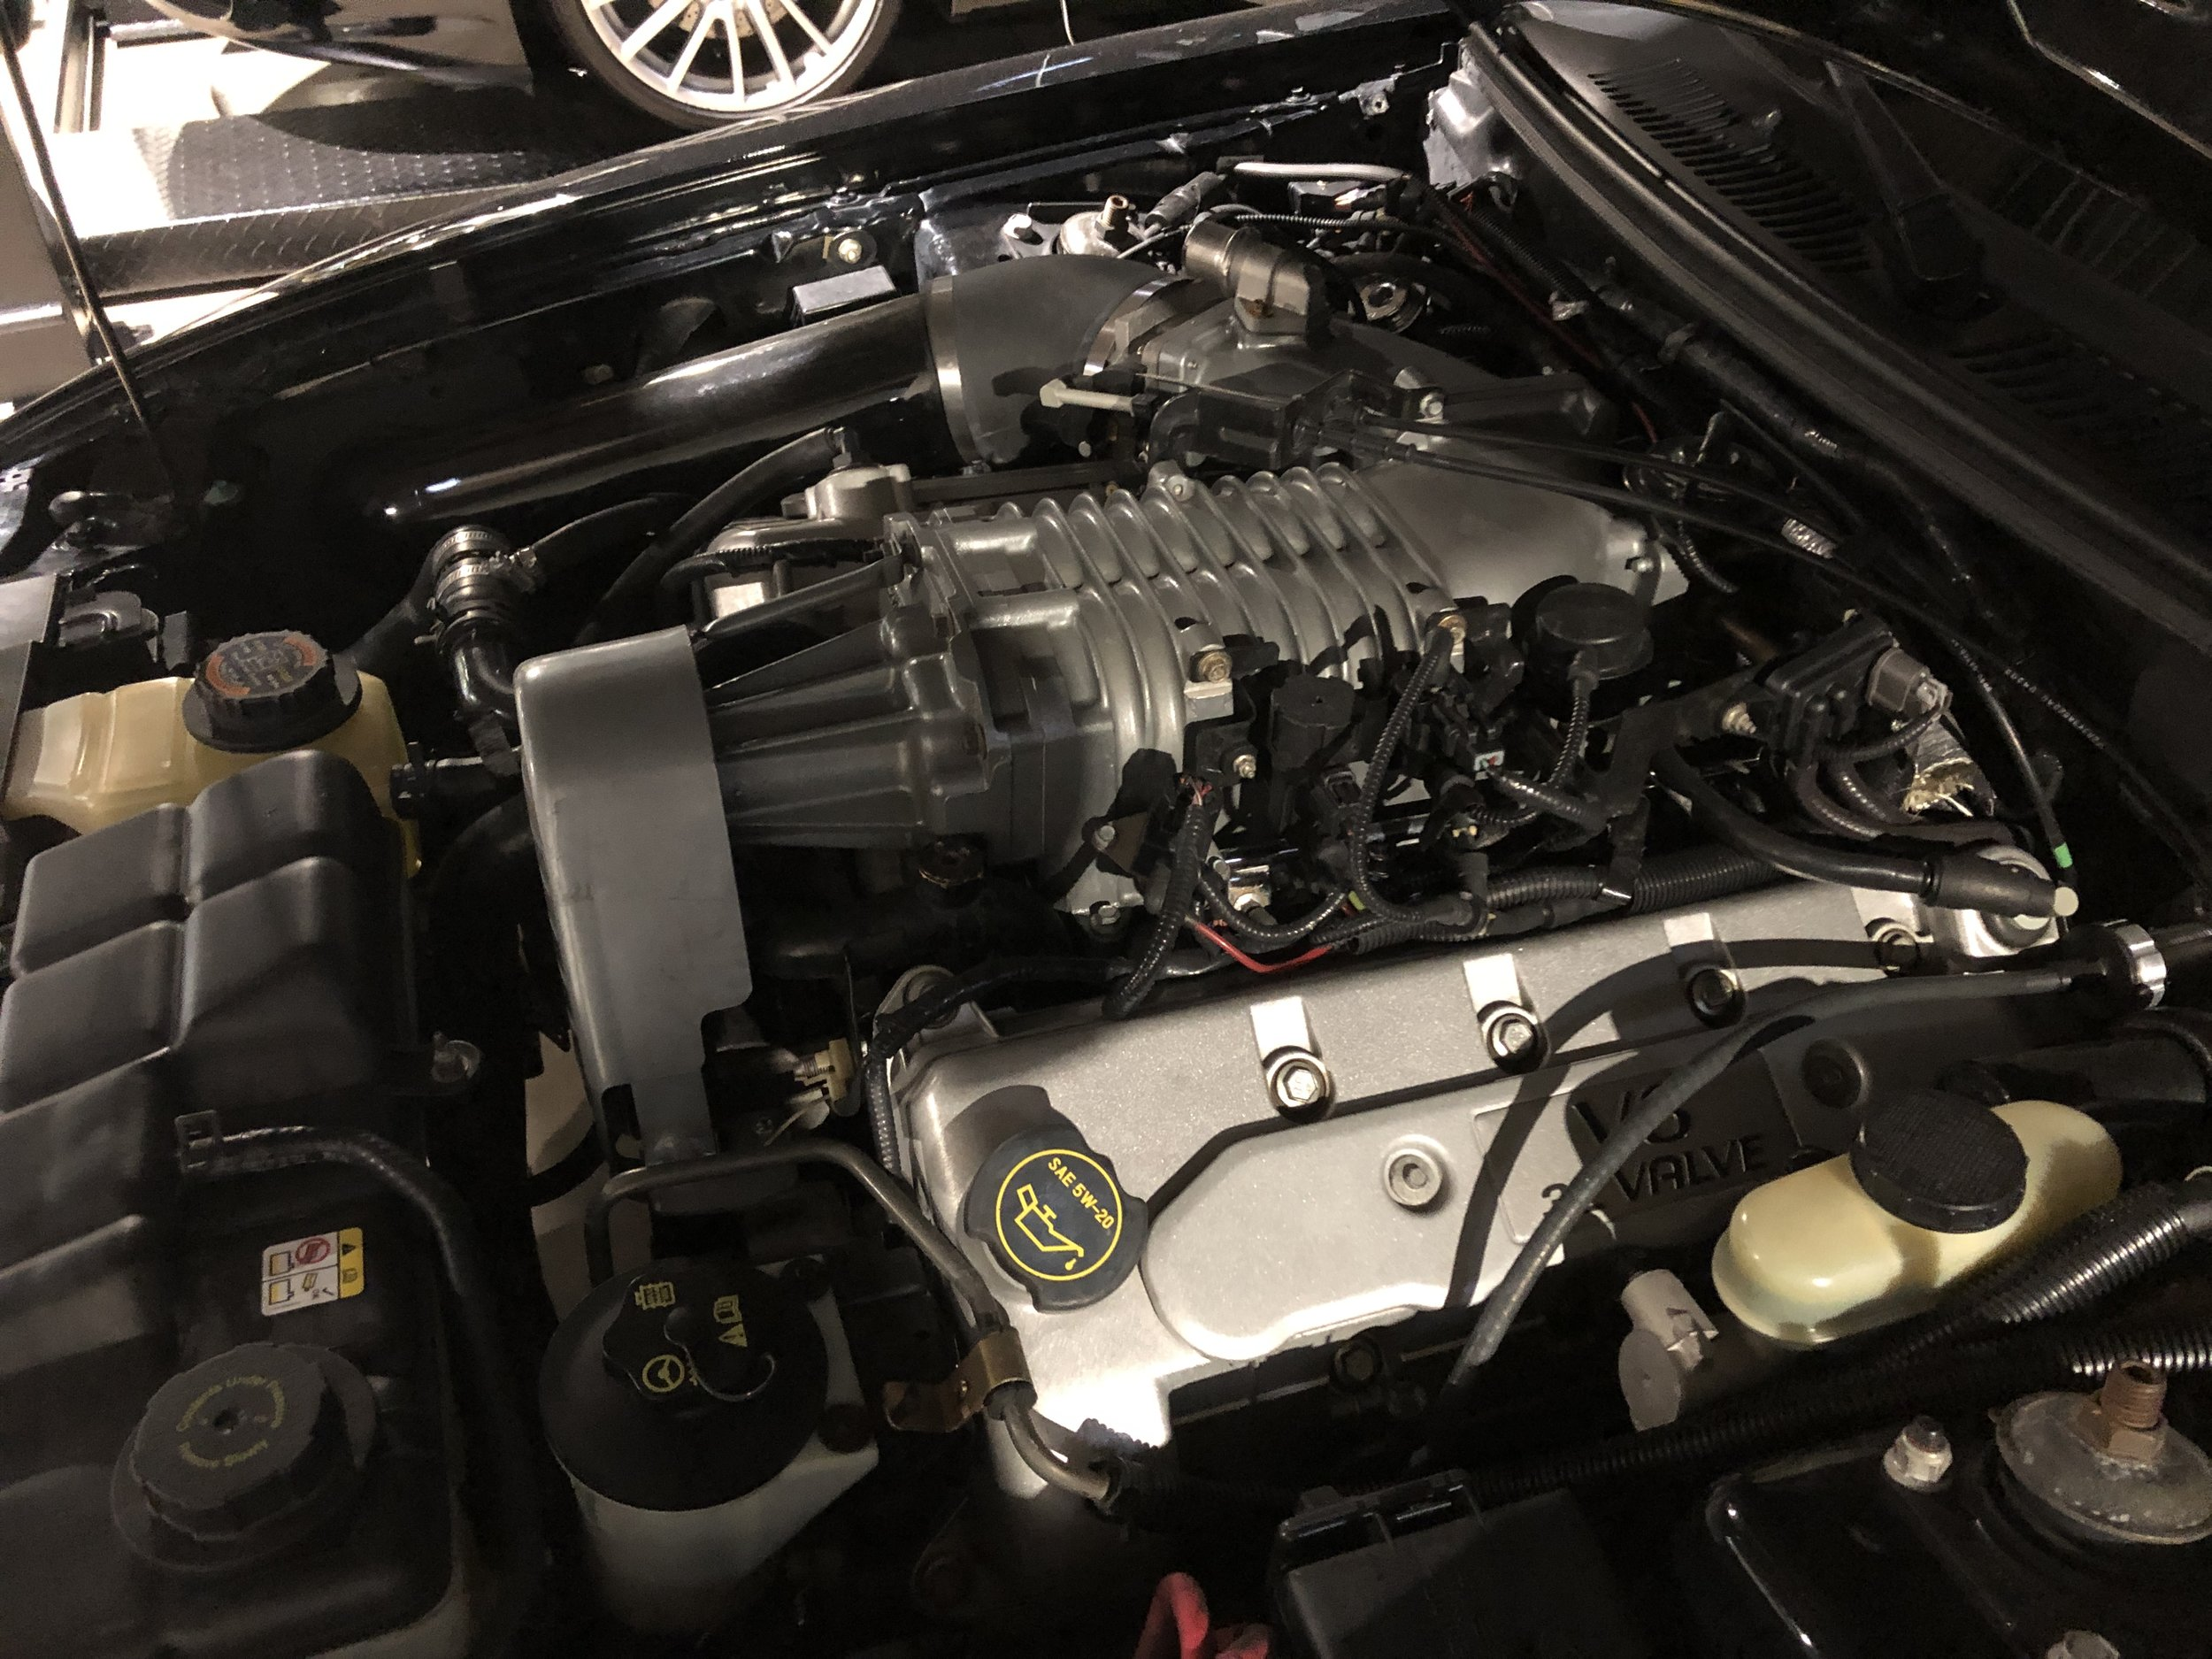 2003 Ford Mustang Svt Cobra Car Engine